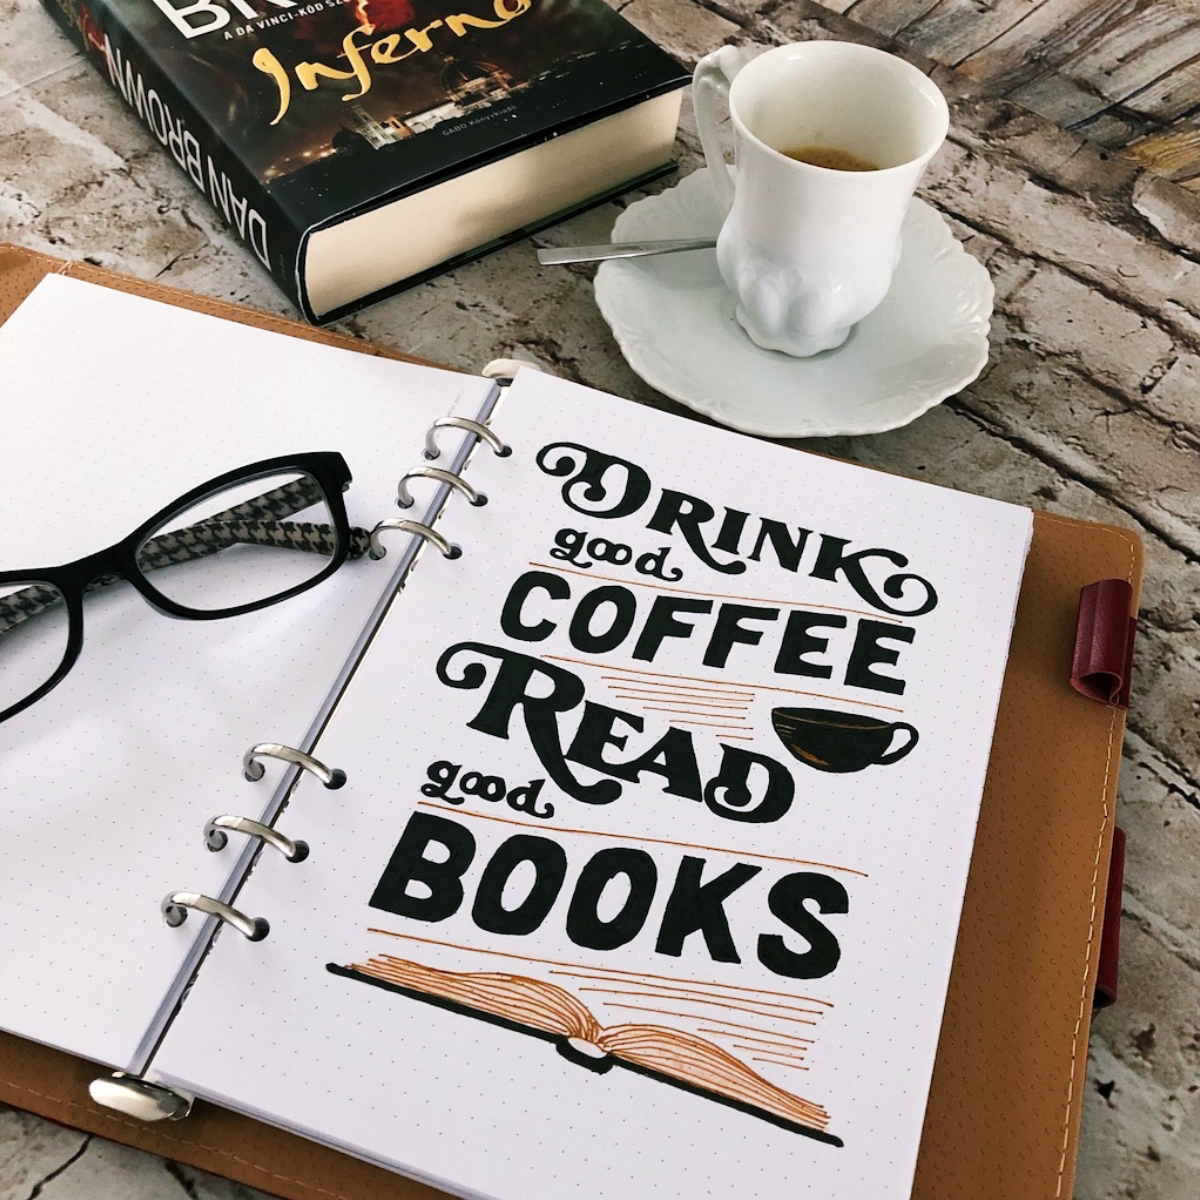 #bookQuote Read books. Drink Coffee.